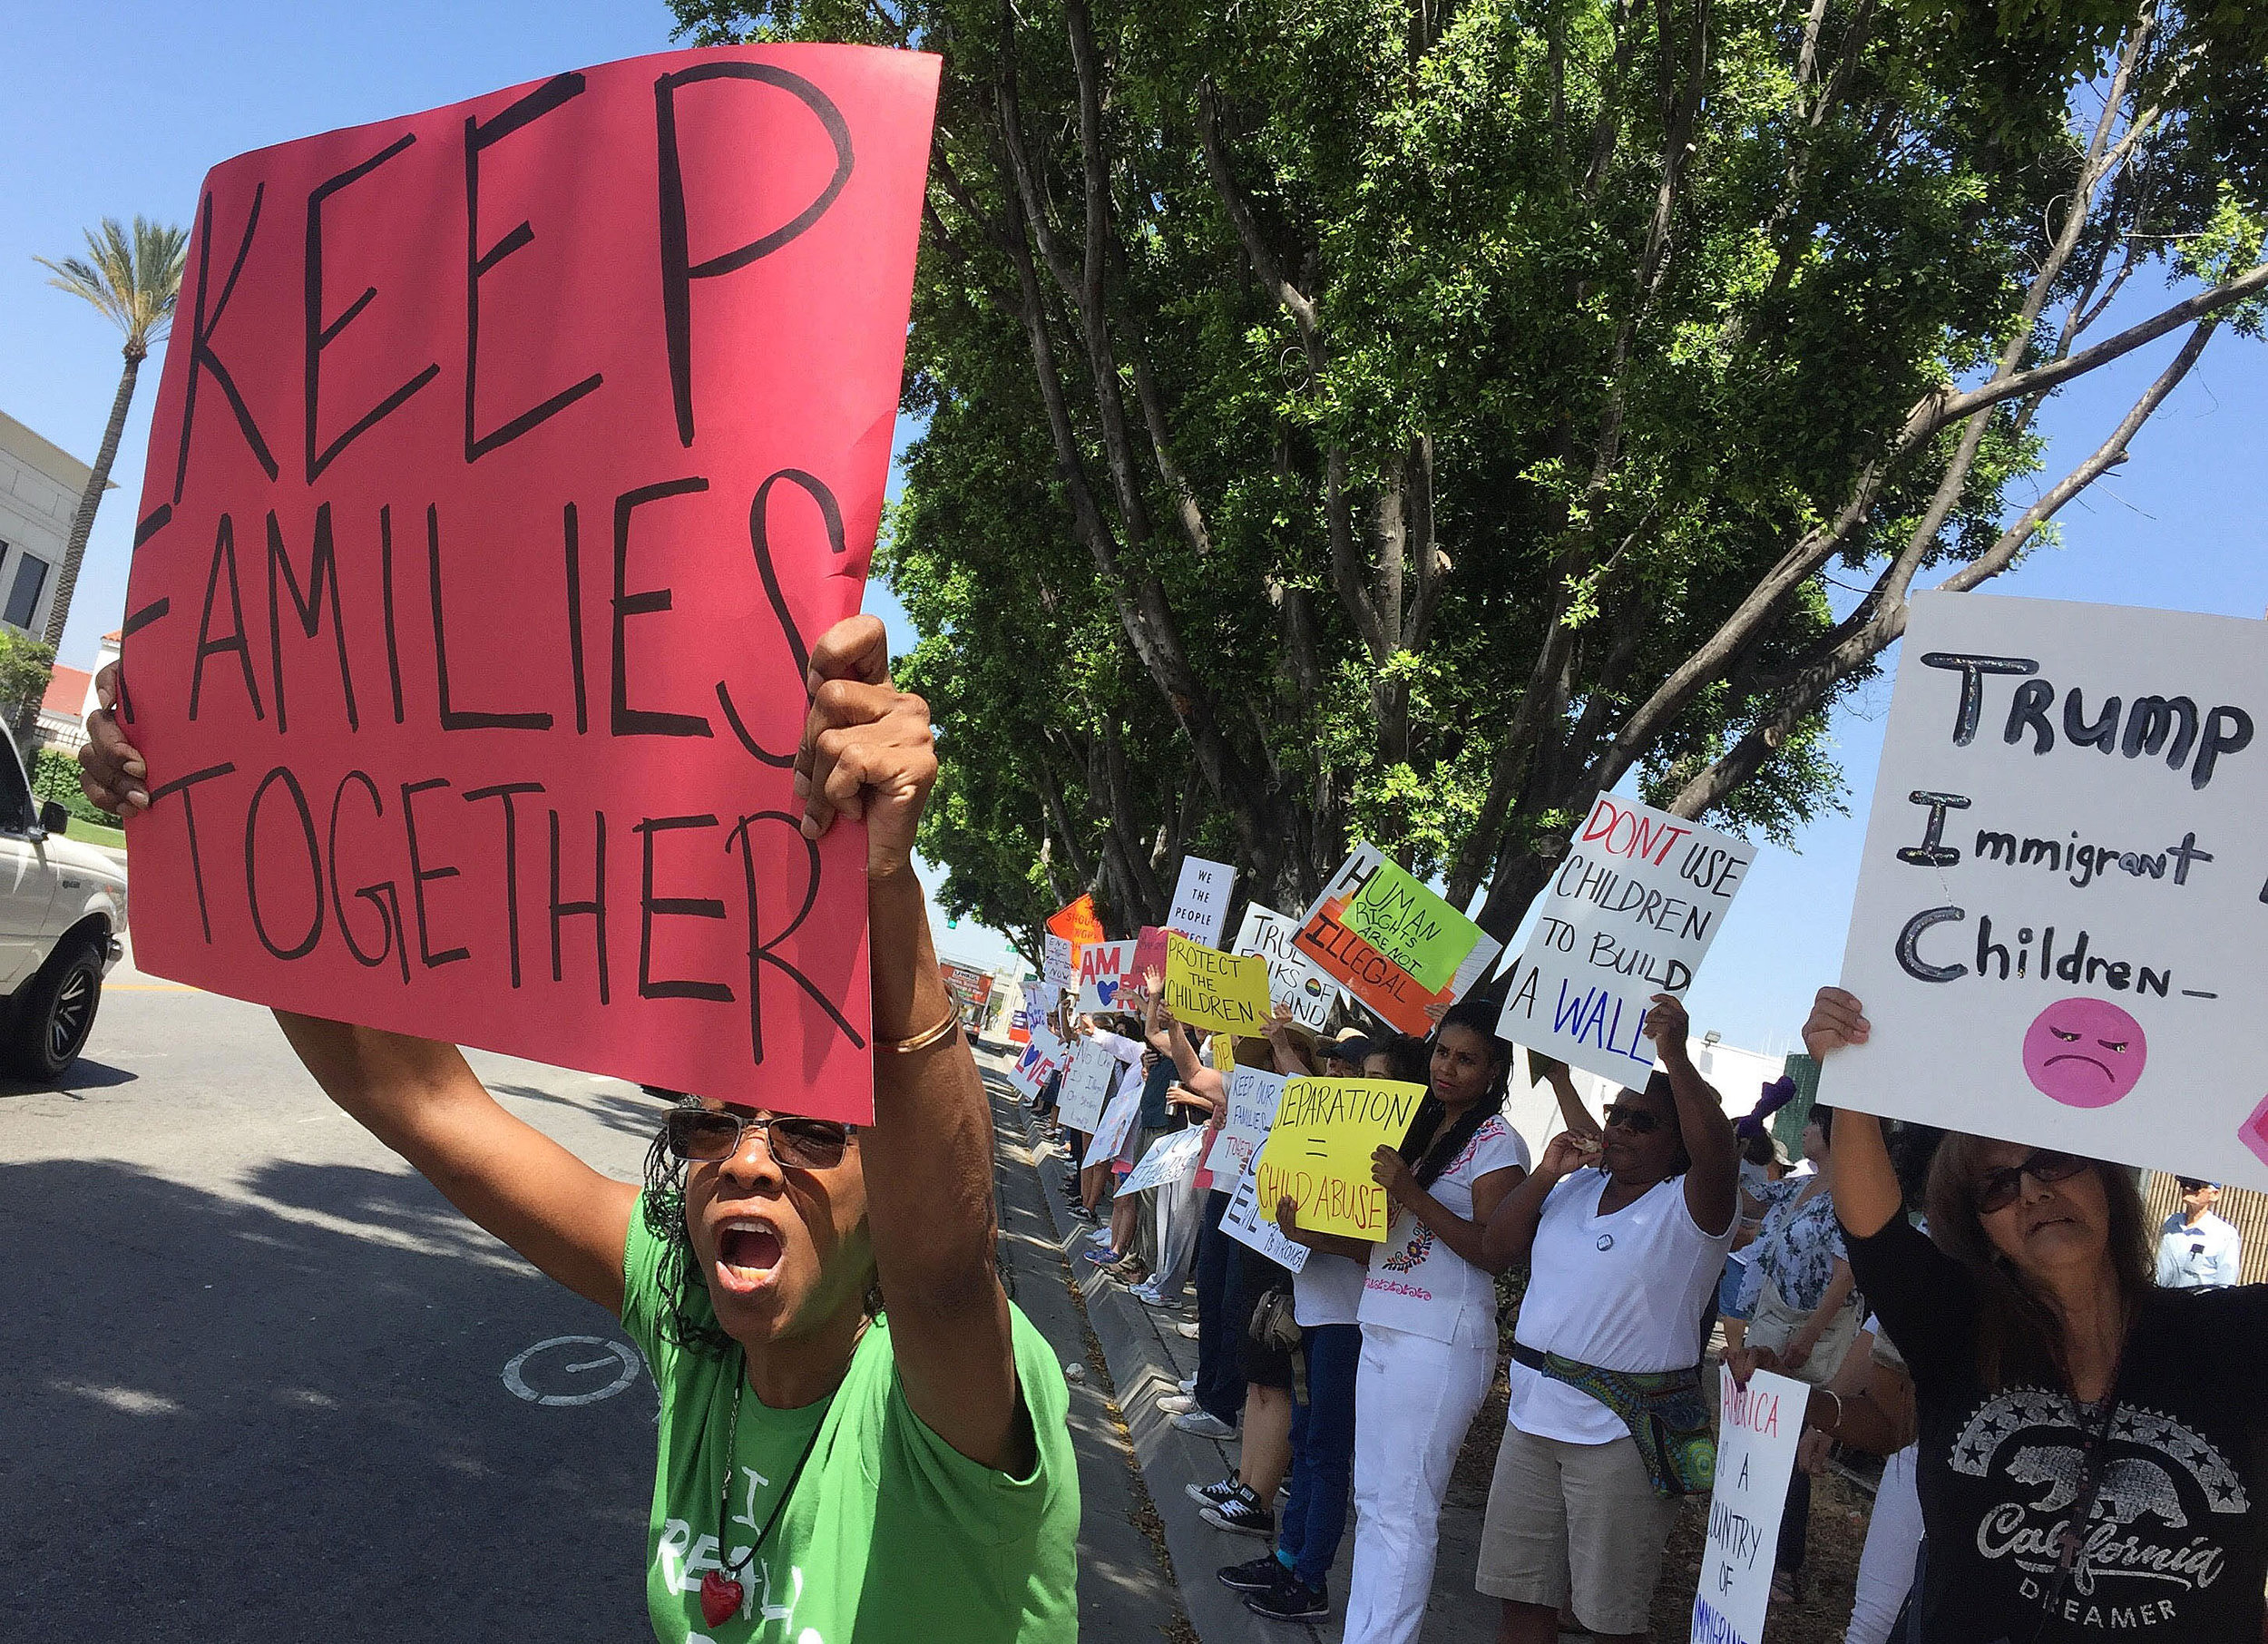 Dr. Carise Charles, from Highland, shouts as she joined approximately 450 other protesters who took part in a Families Belong Together rally outside the office of Homeland Security in San Bernardino on Saturday, June 30, 2018. The peaceful group gathered in support of immigrant families that have been separated by federal agents under U.S. policy.